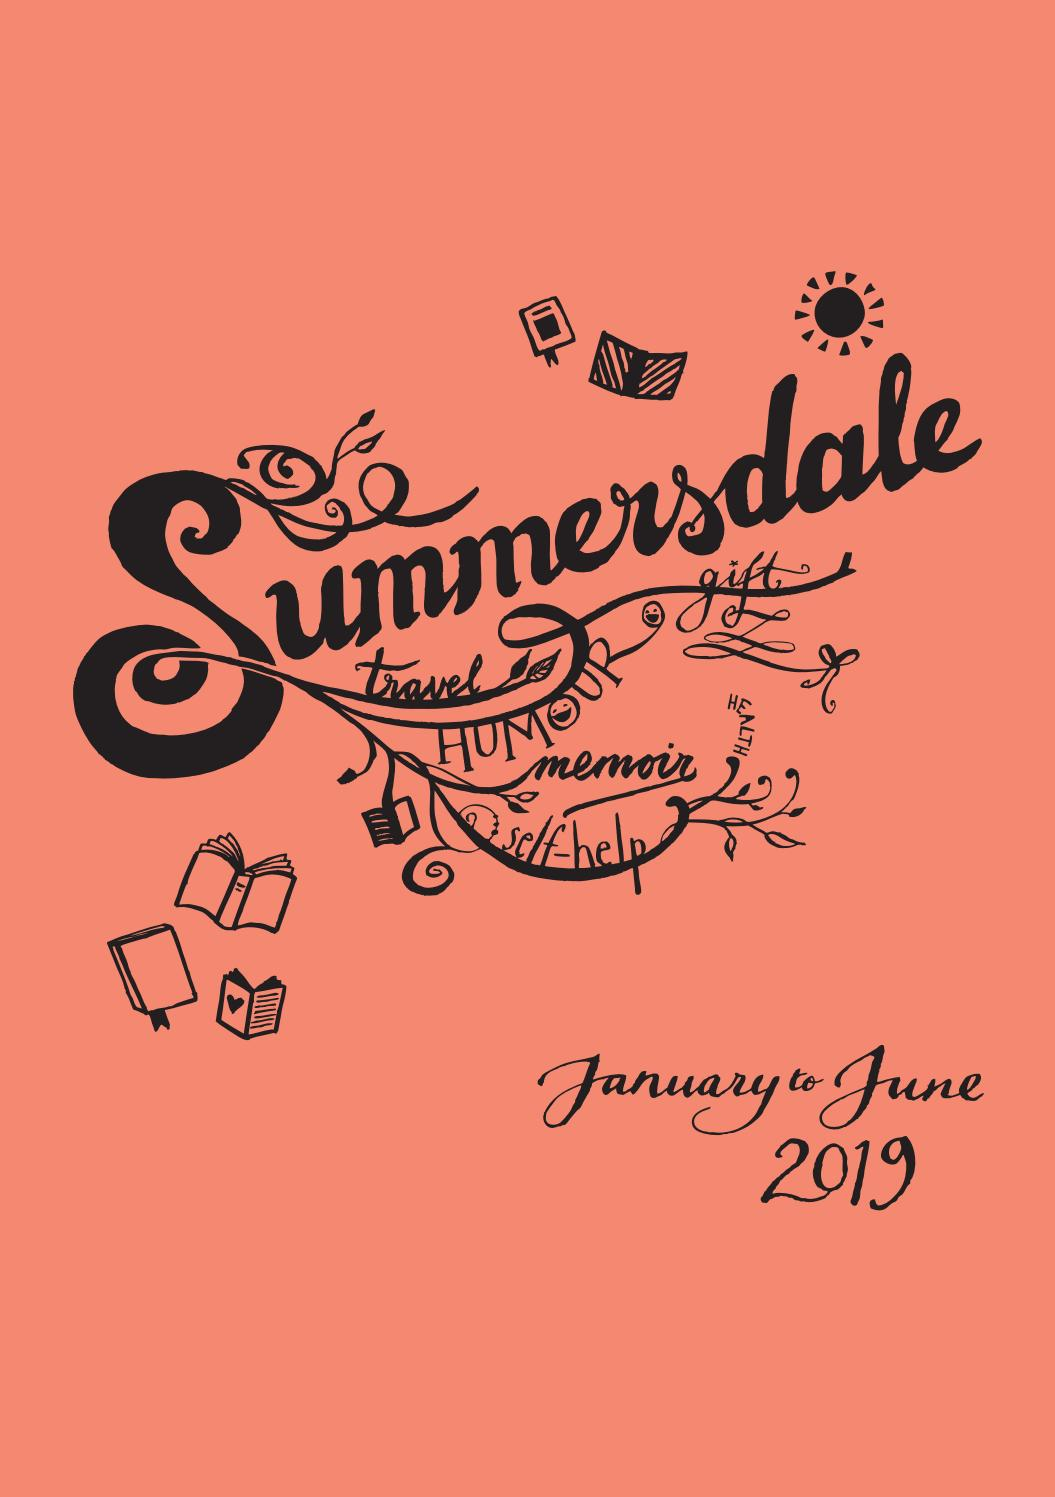 8483a0f3e44d3 Summersdale January to June 2019 Catalogue by Alastair Williams - issuu